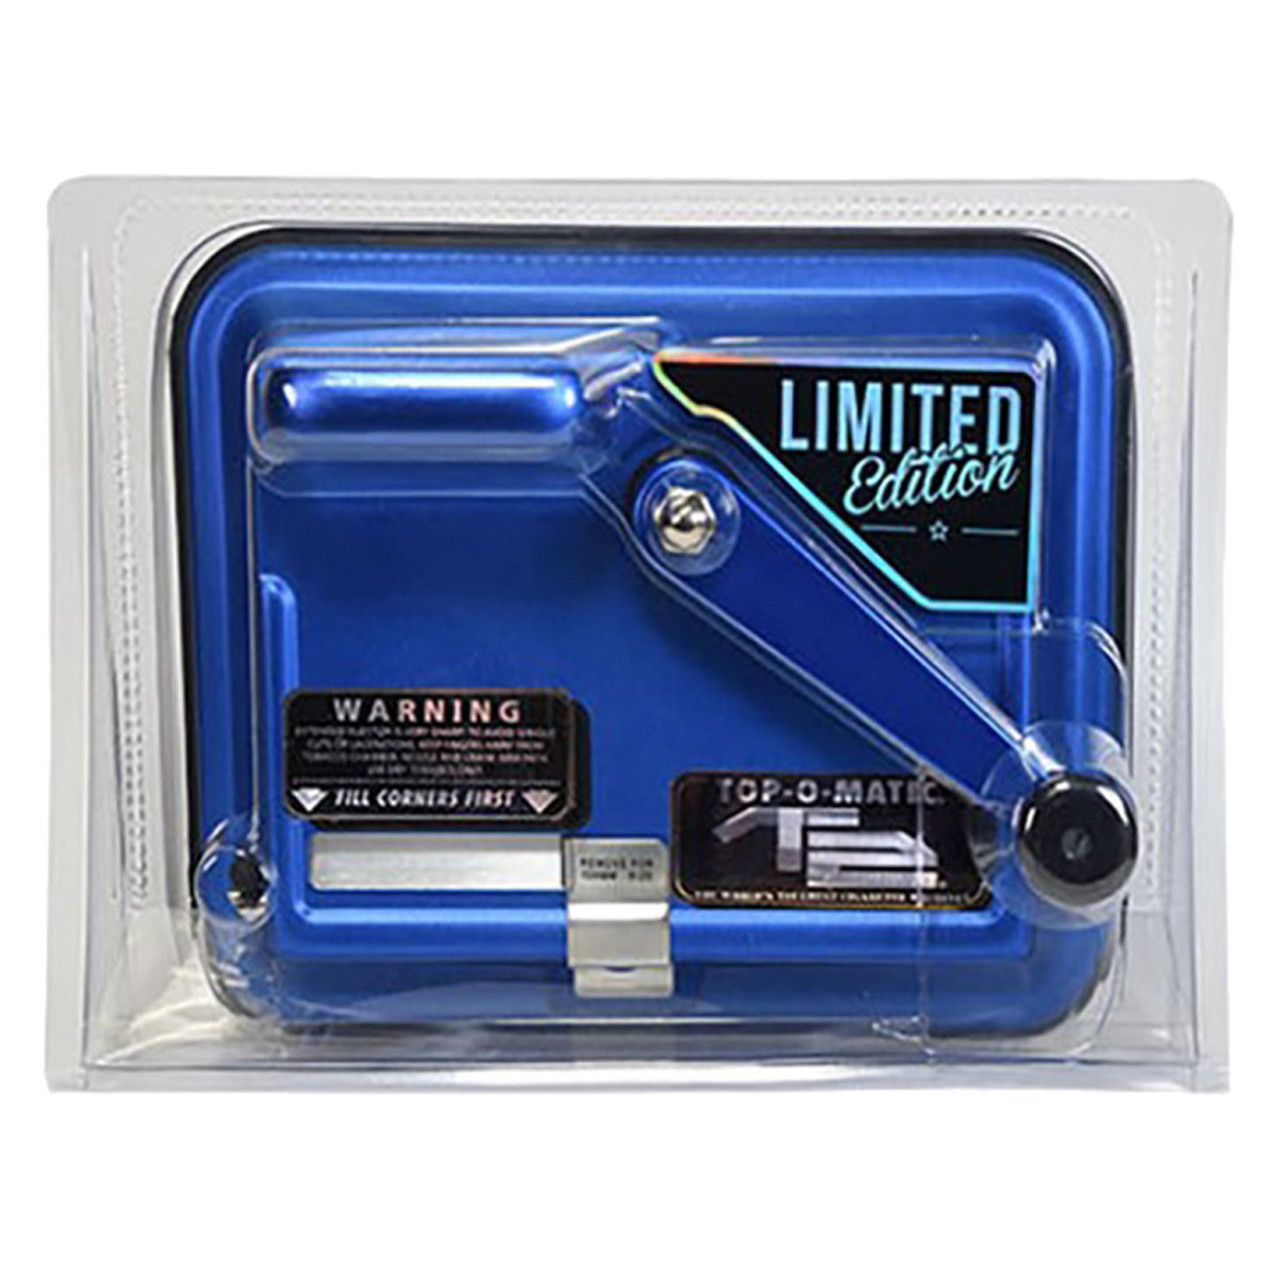 Top-O-Matic T2 Cigarette Rolling Injector Machine Limited Edition Blue